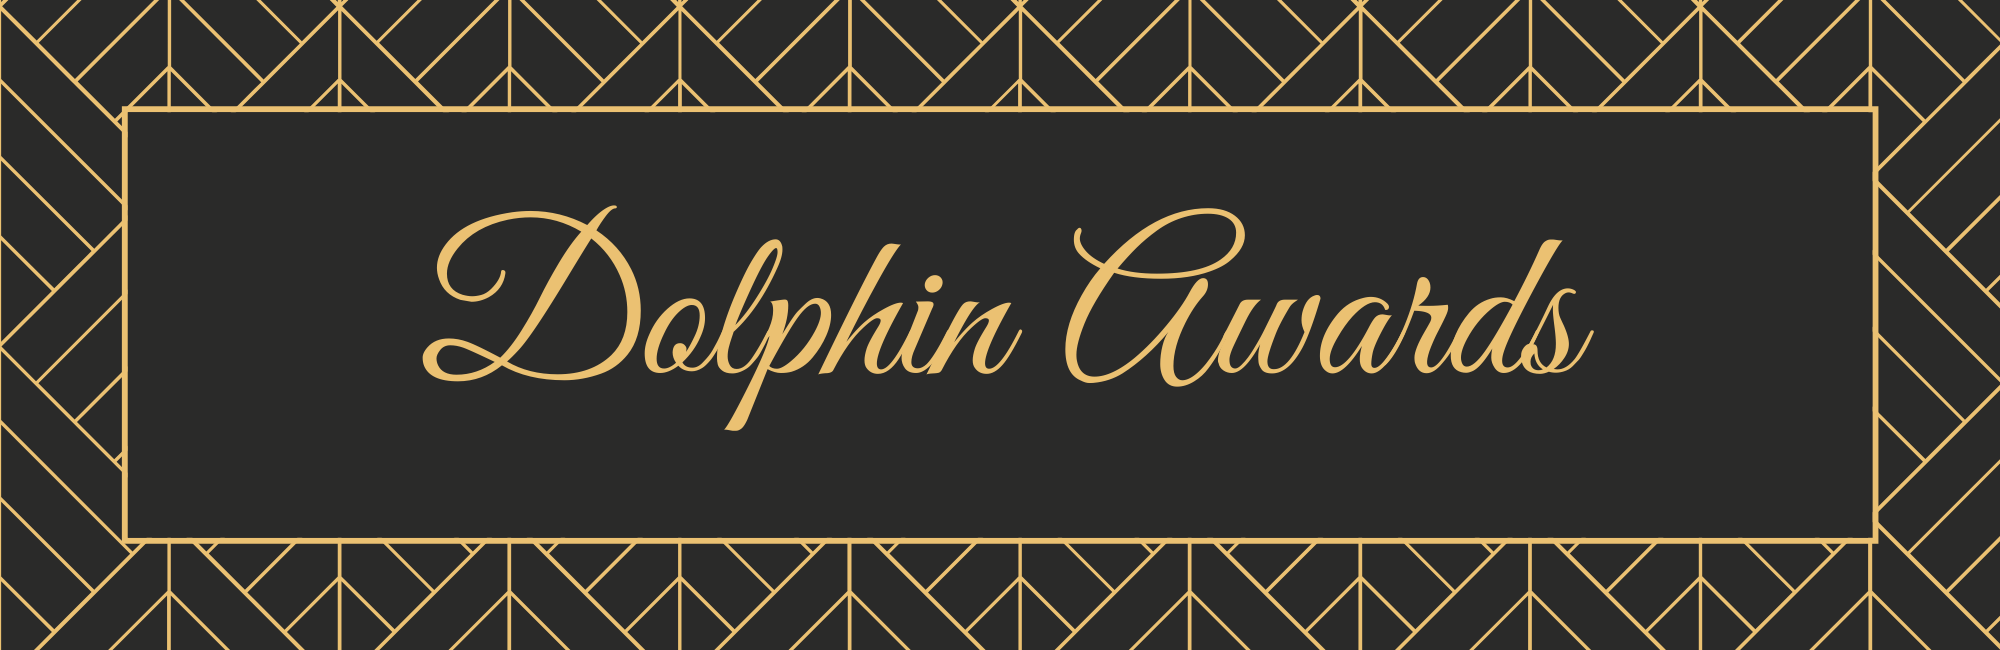 Dolphin web banner